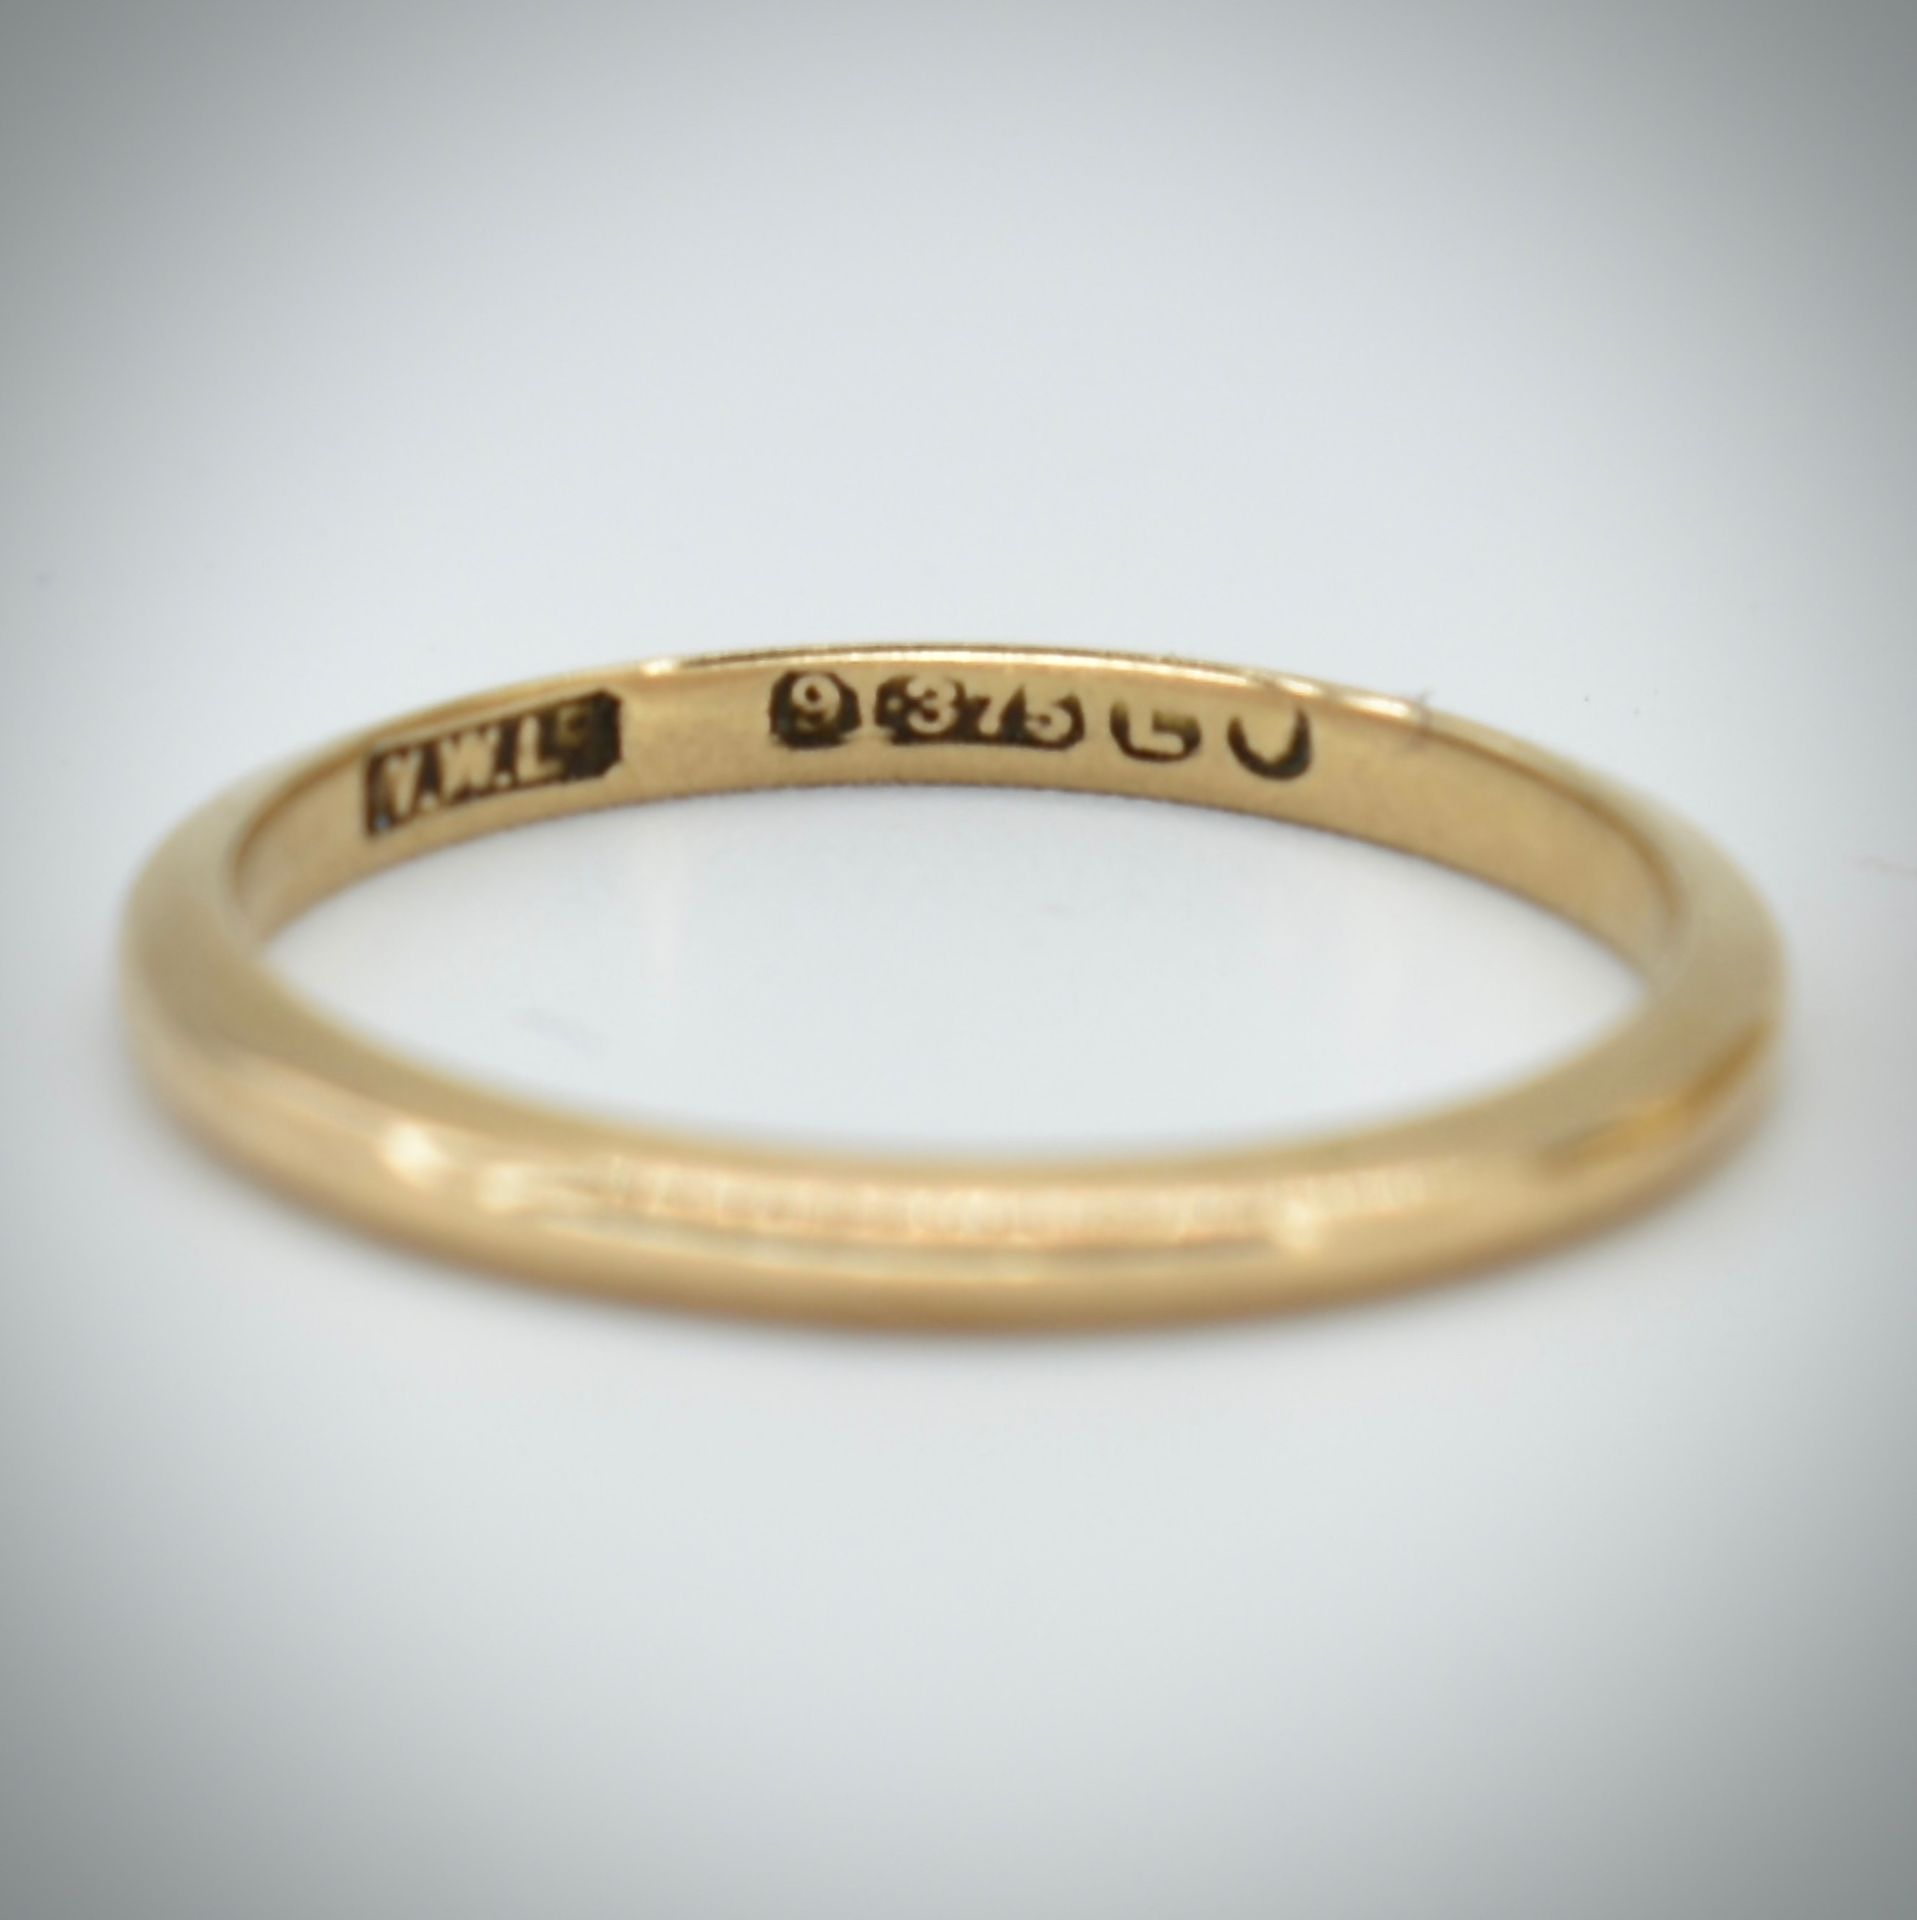 Two Hallmarked 9ct Gold Band Rings - Image 3 of 3